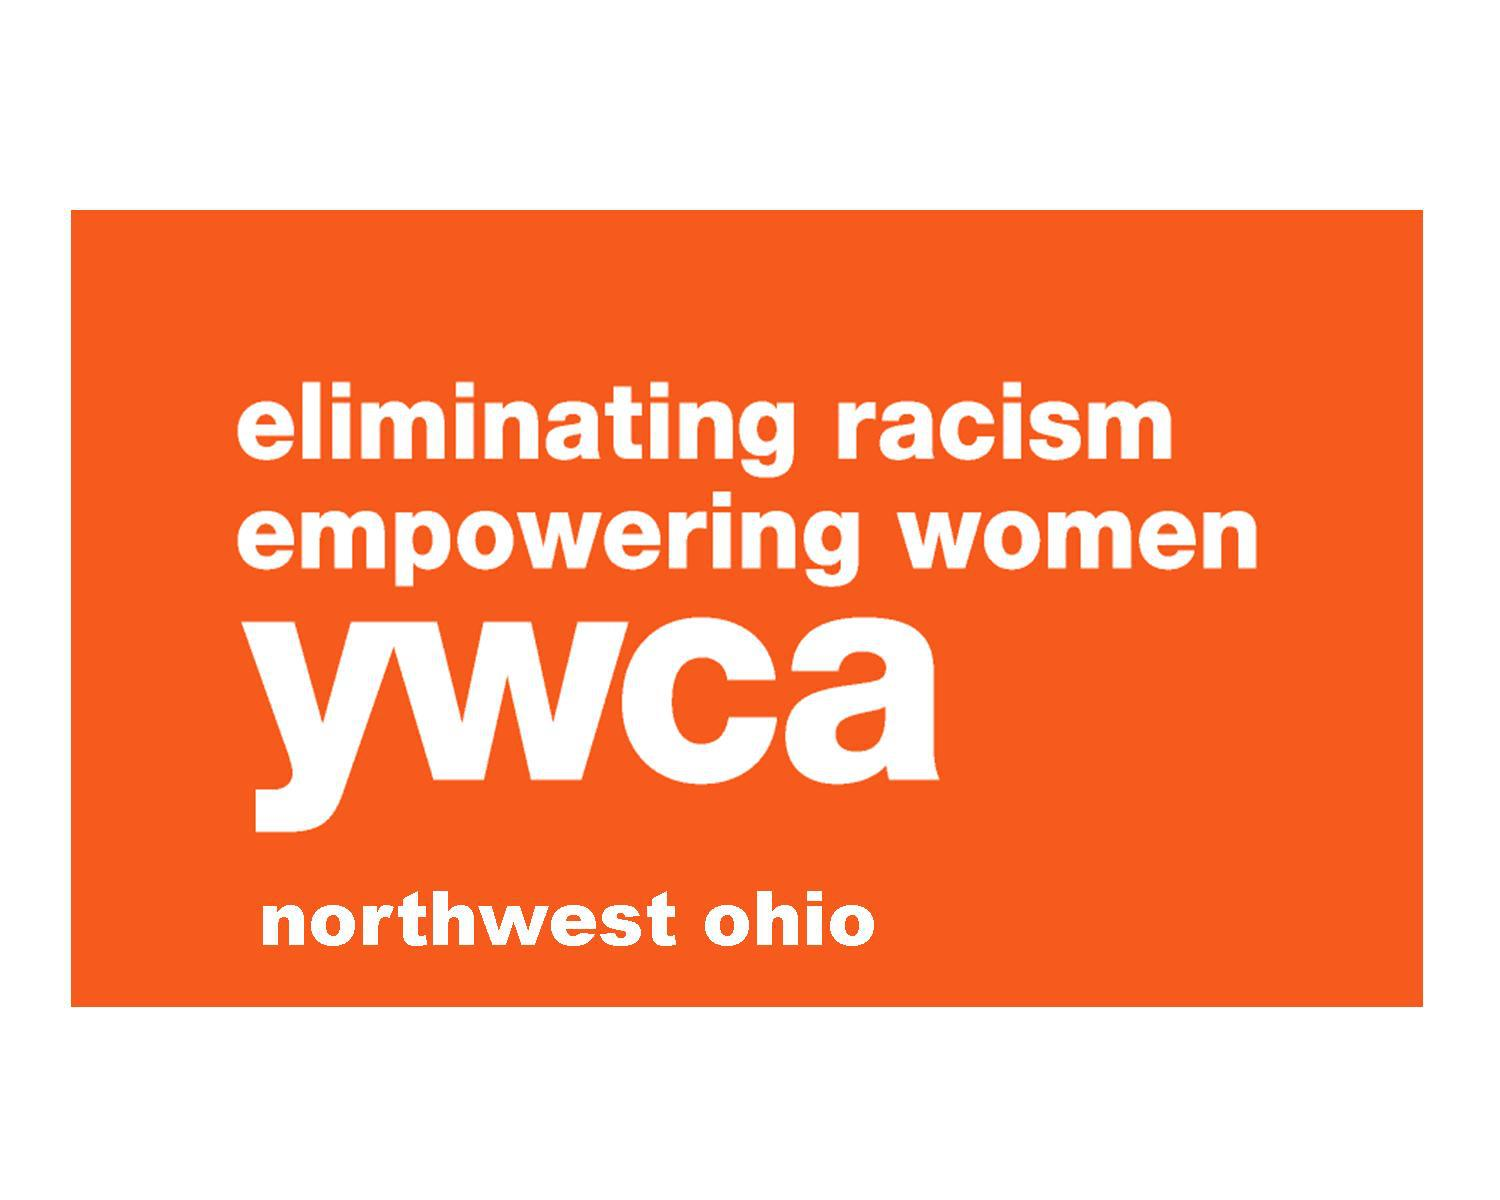 YWCA - Northwest Ohio logo